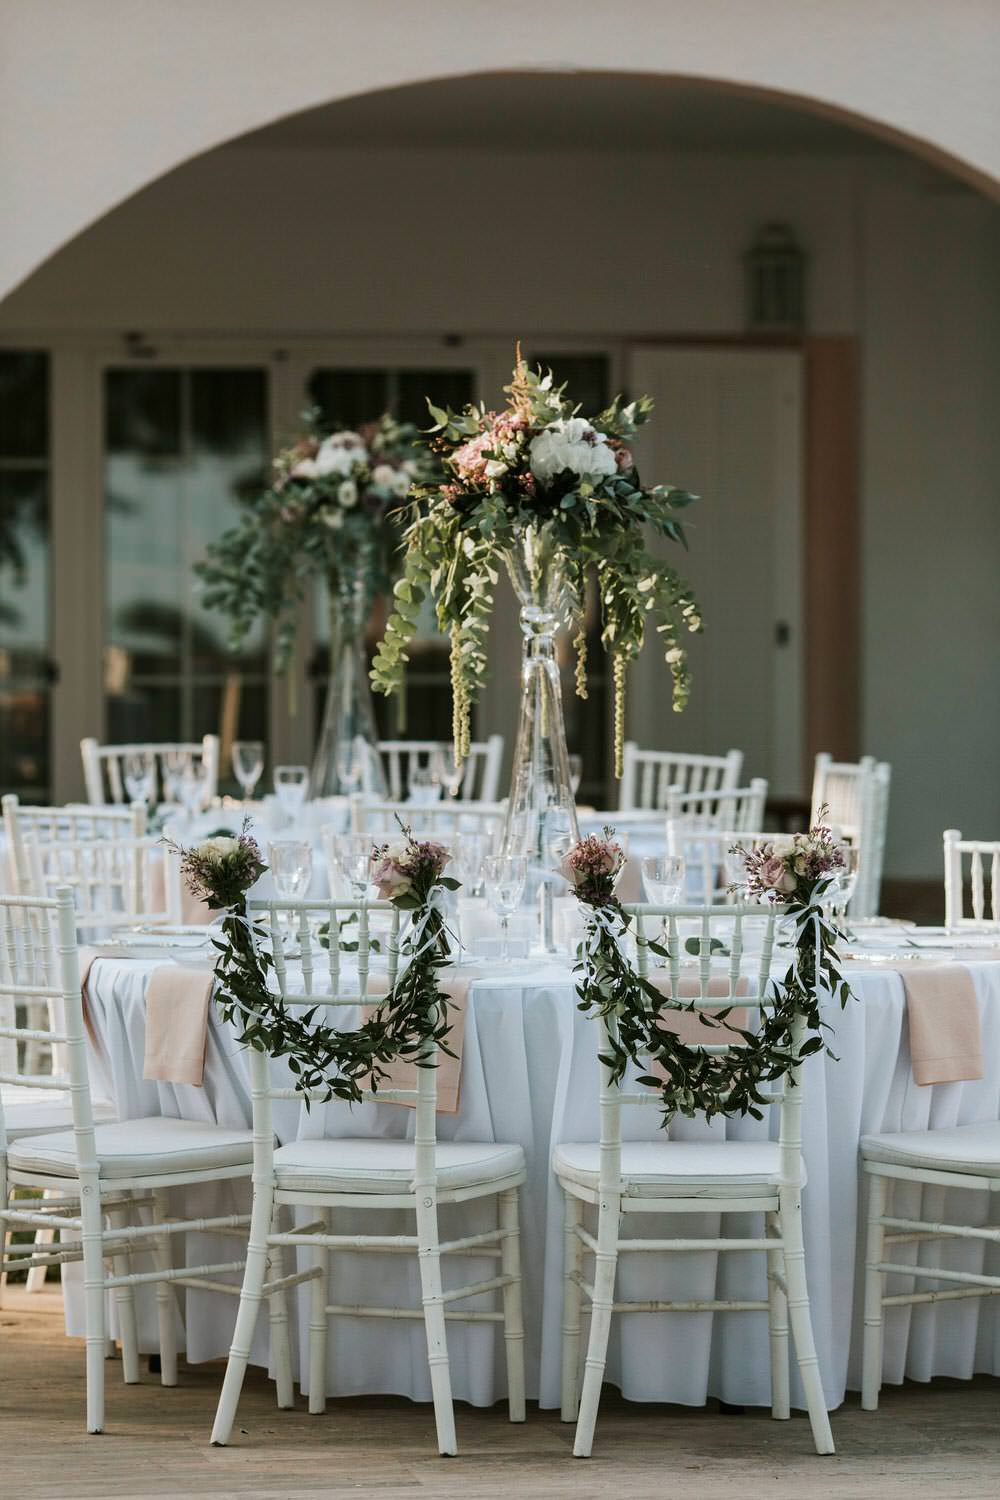 Swag Garland Greenery Foliage Chair Backs Decor Bohemian Beach Greece Destination Wedding Lighthouse Photography